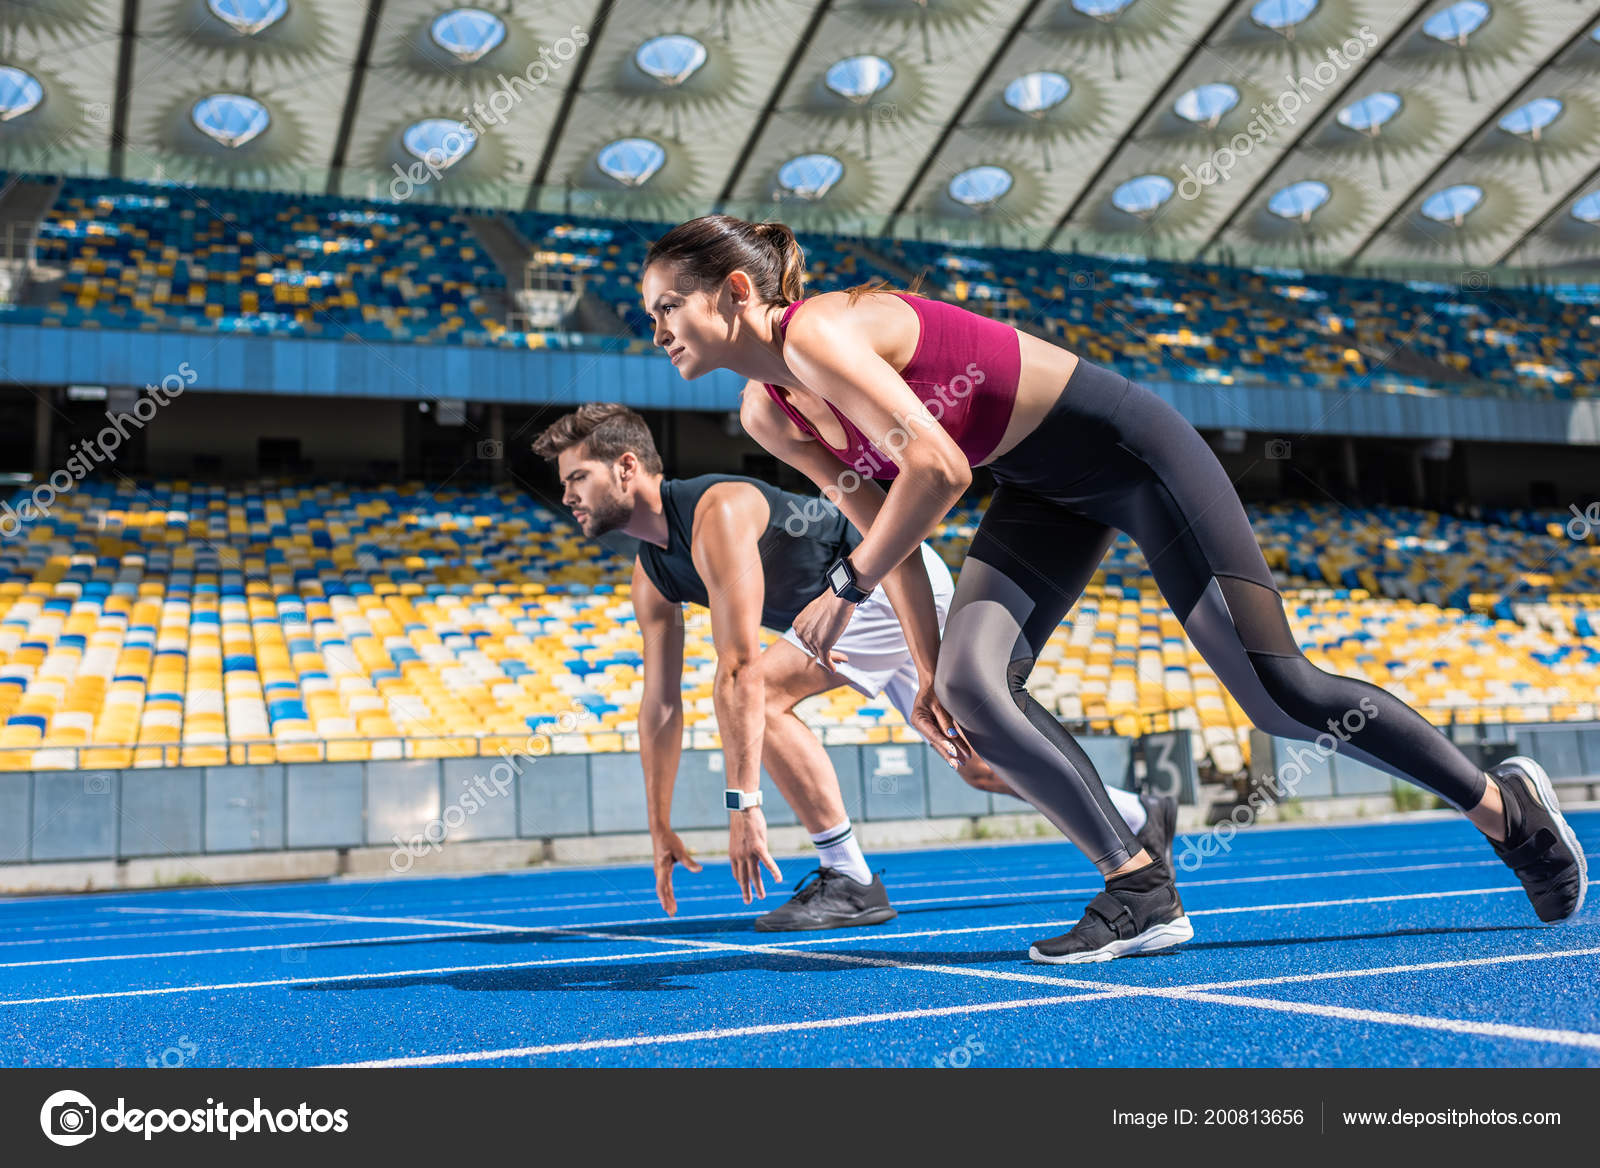 athletic young male female sprinters start position running track